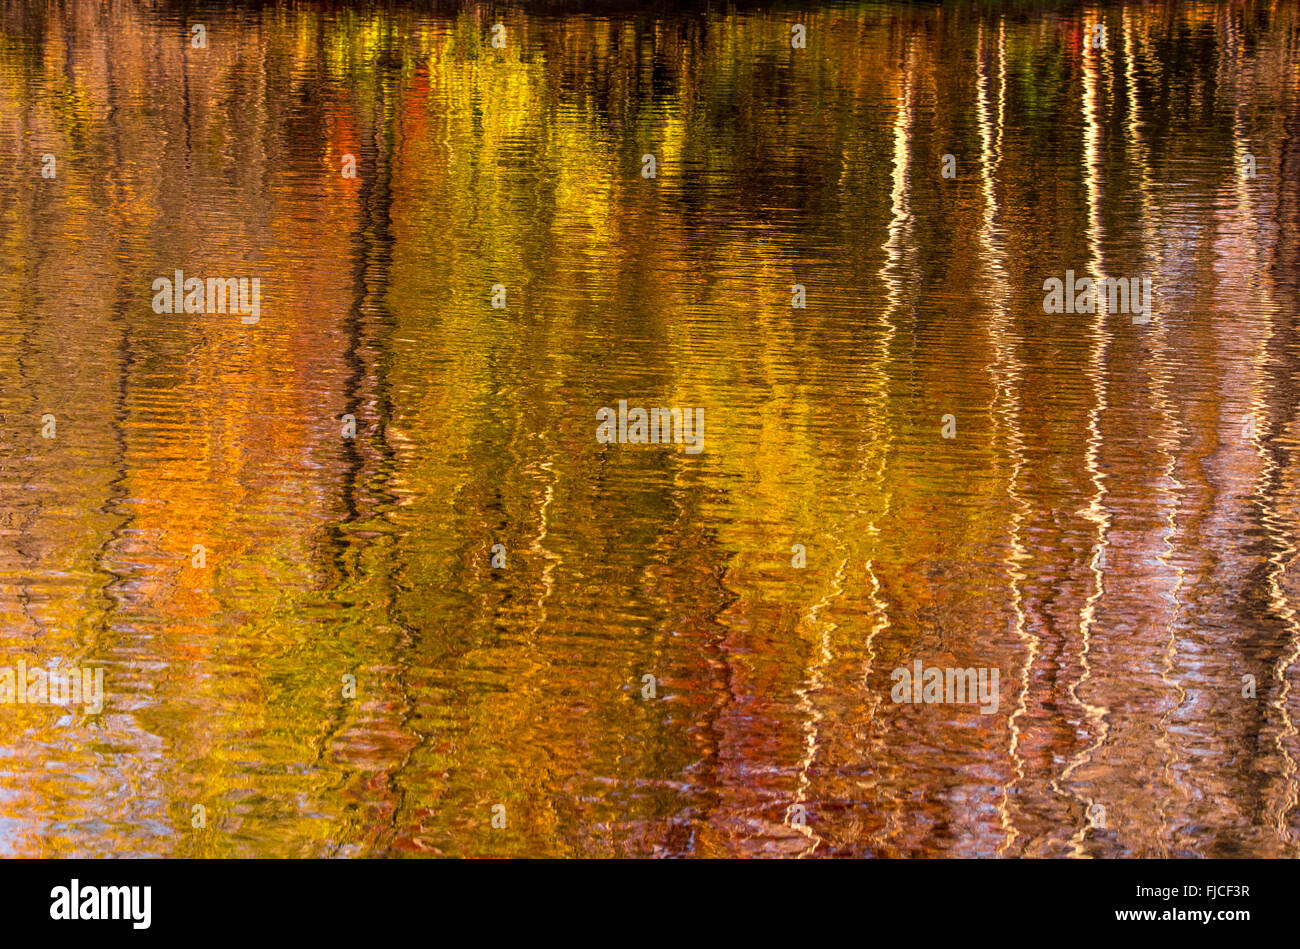 Close-up of Abstract  Autumn Water reflections patterns, USA - Stock Image